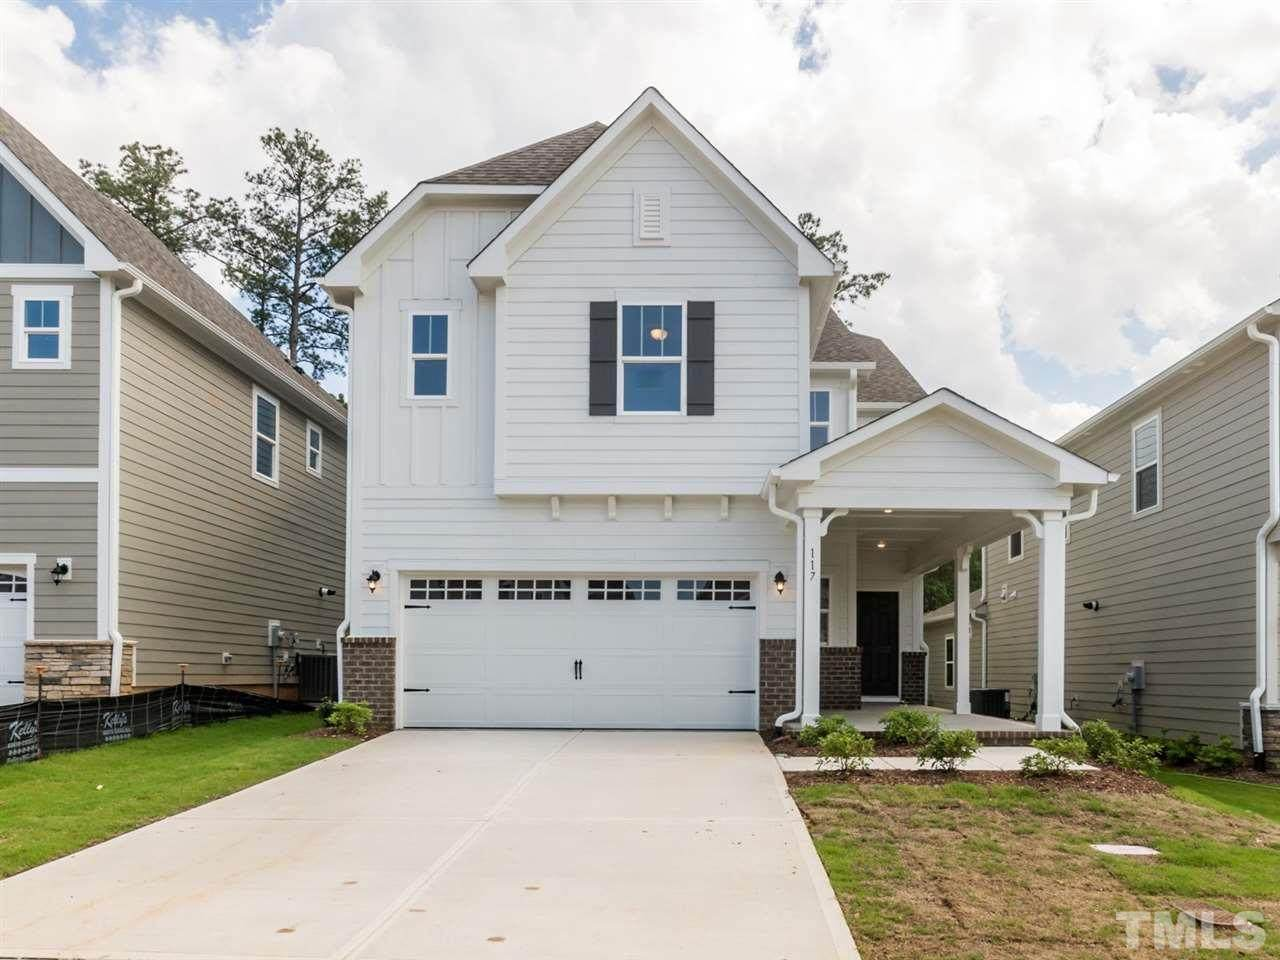 117 Azalea View Way - Photo 1